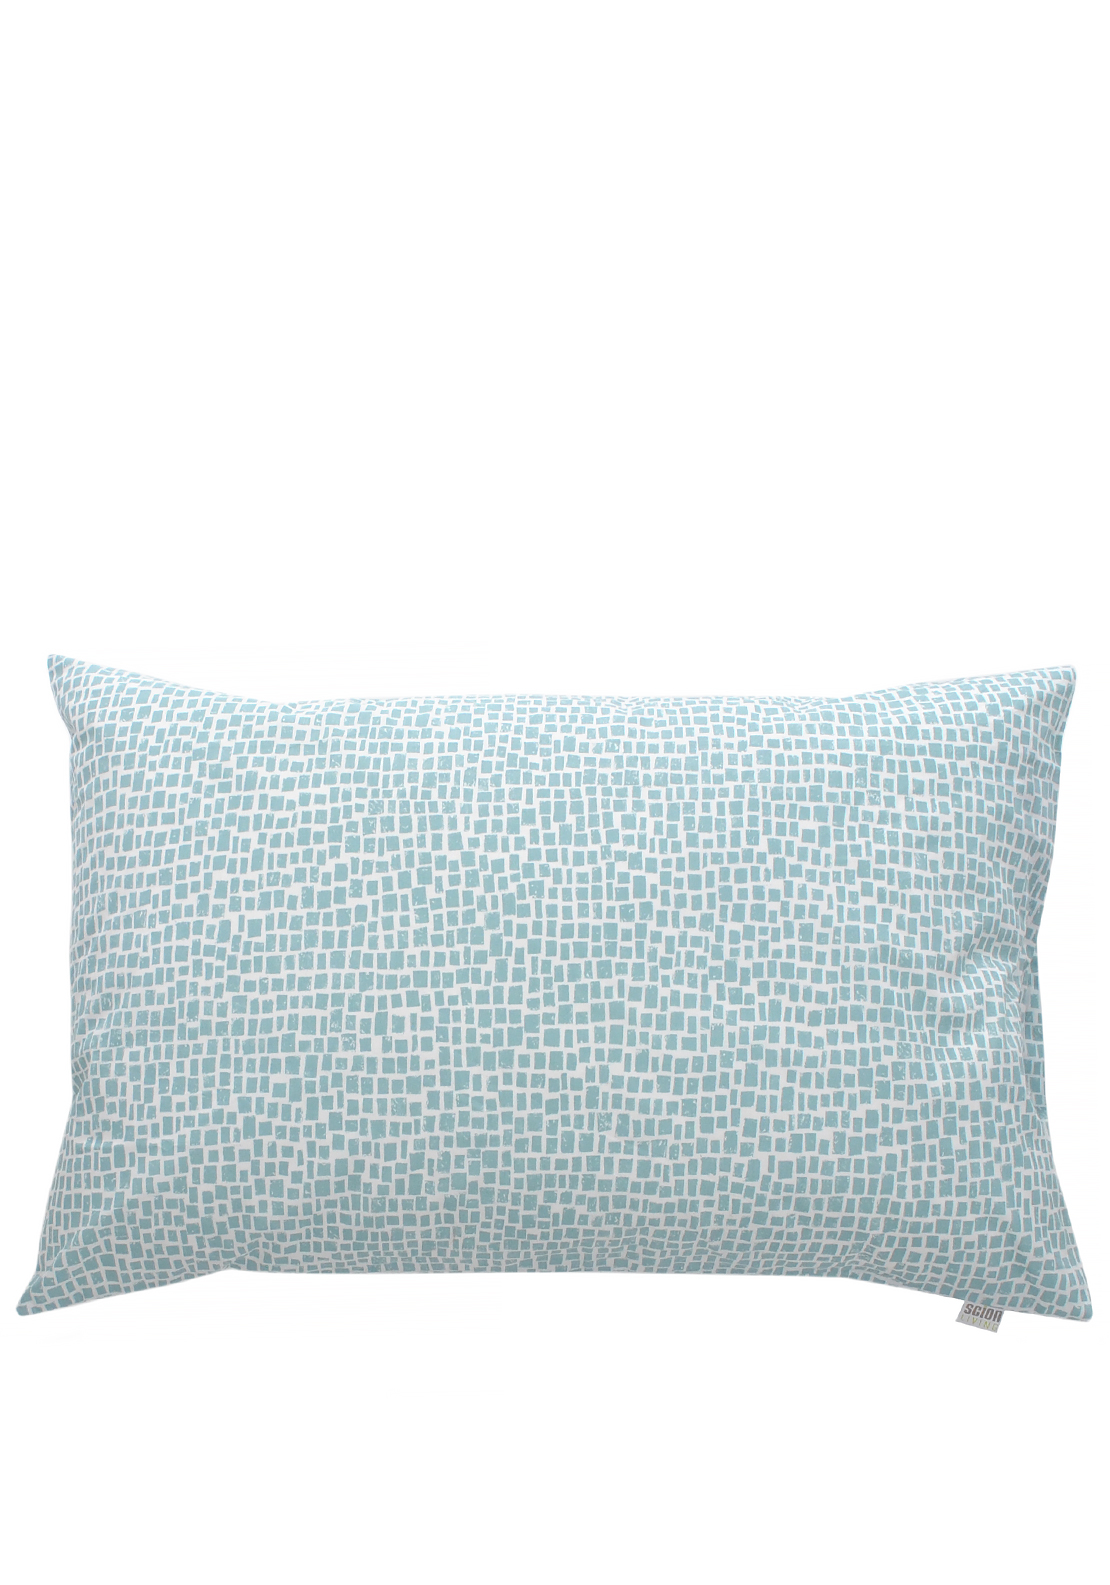 Scion Living Anneke Housewife Pillowcases, Set of 2